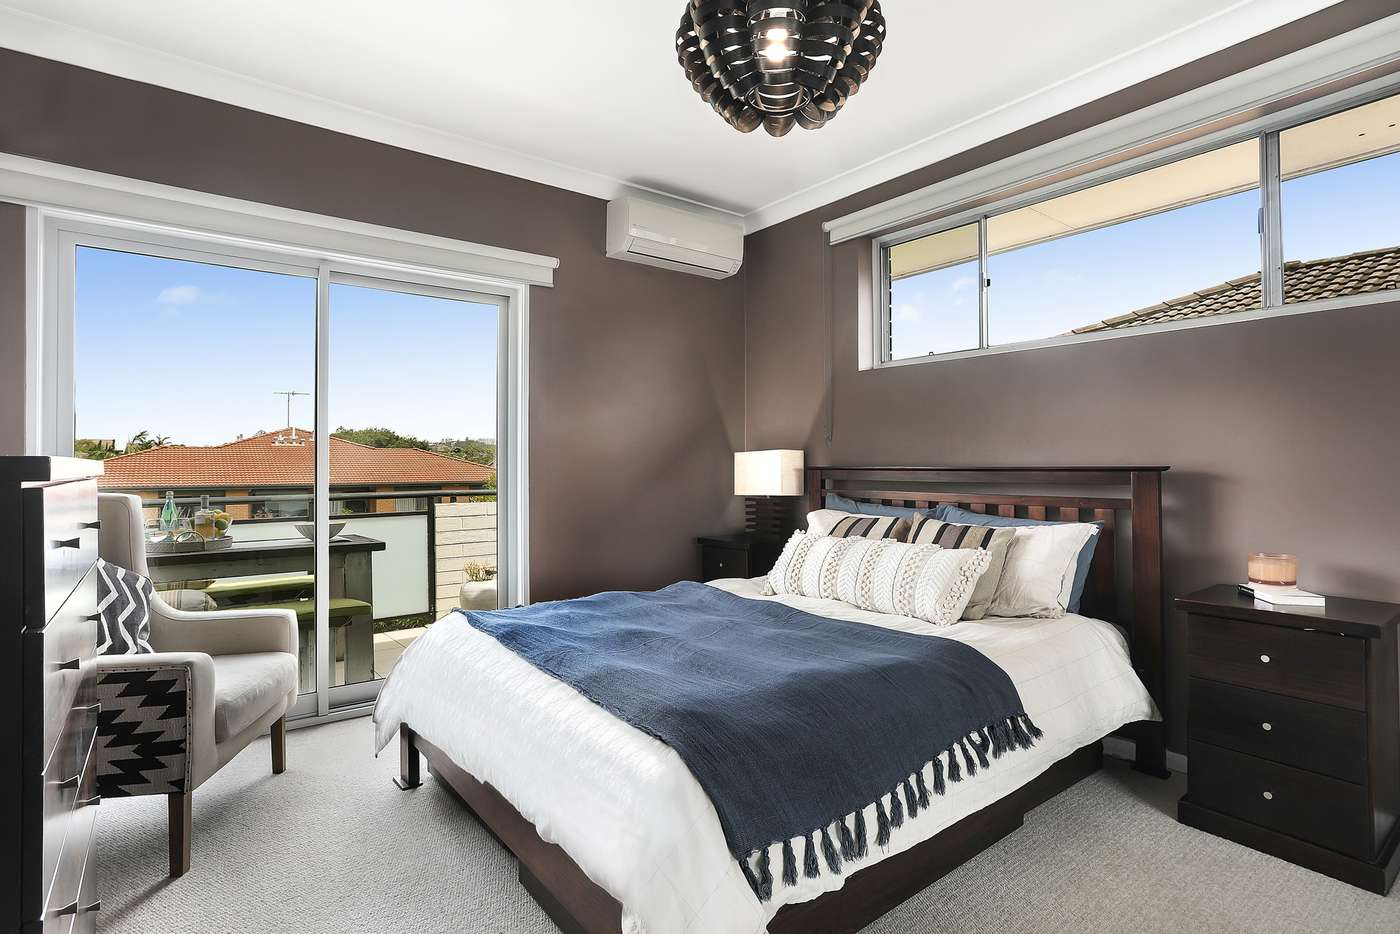 Fifth view of Homely apartment listing, 7/22 Liverpool Street, Rose Bay NSW 2029